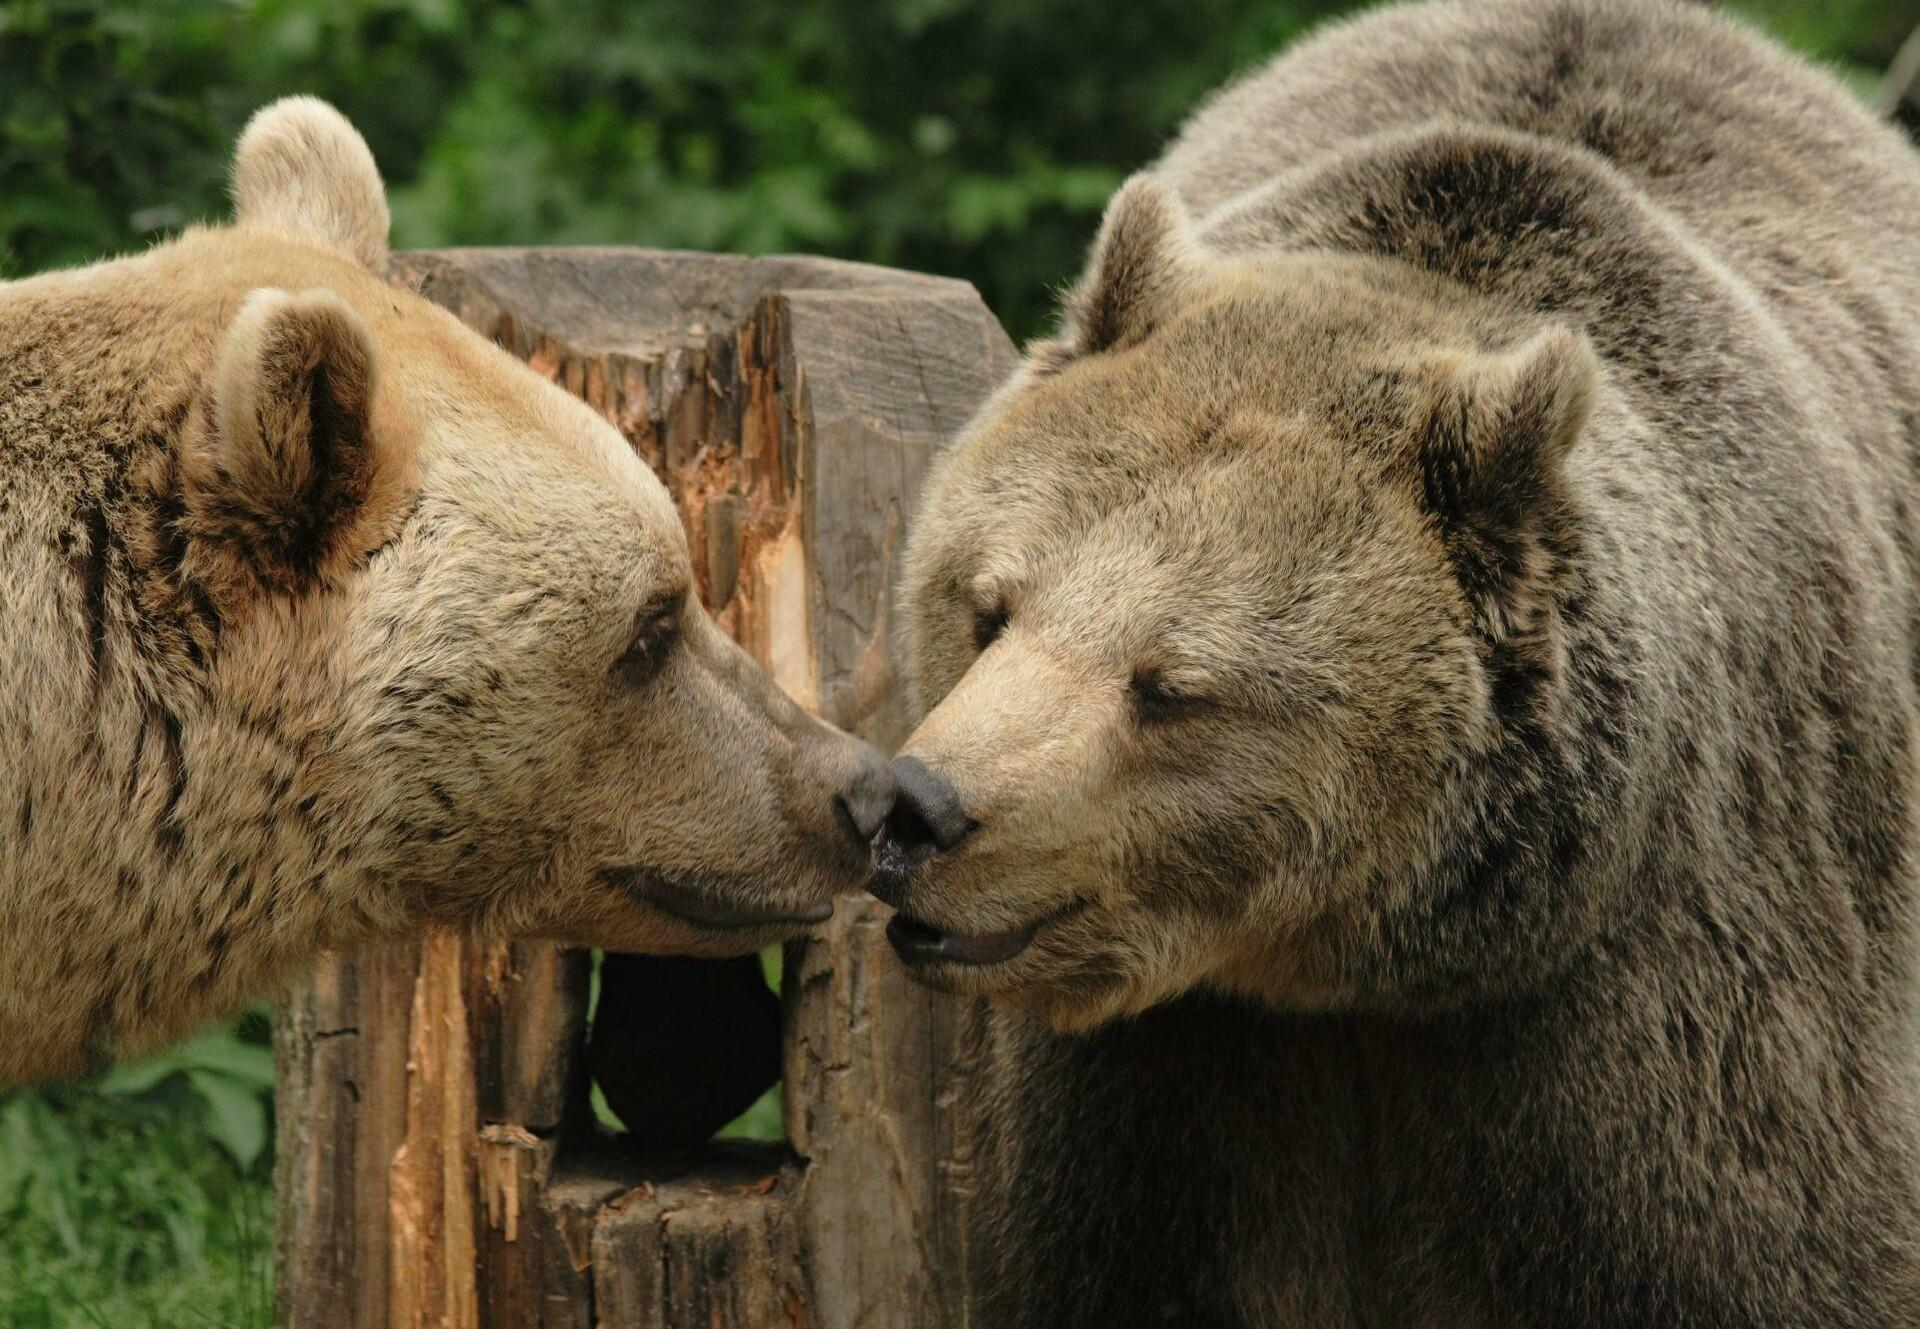 BEAR SANCTUARY Arbesbach